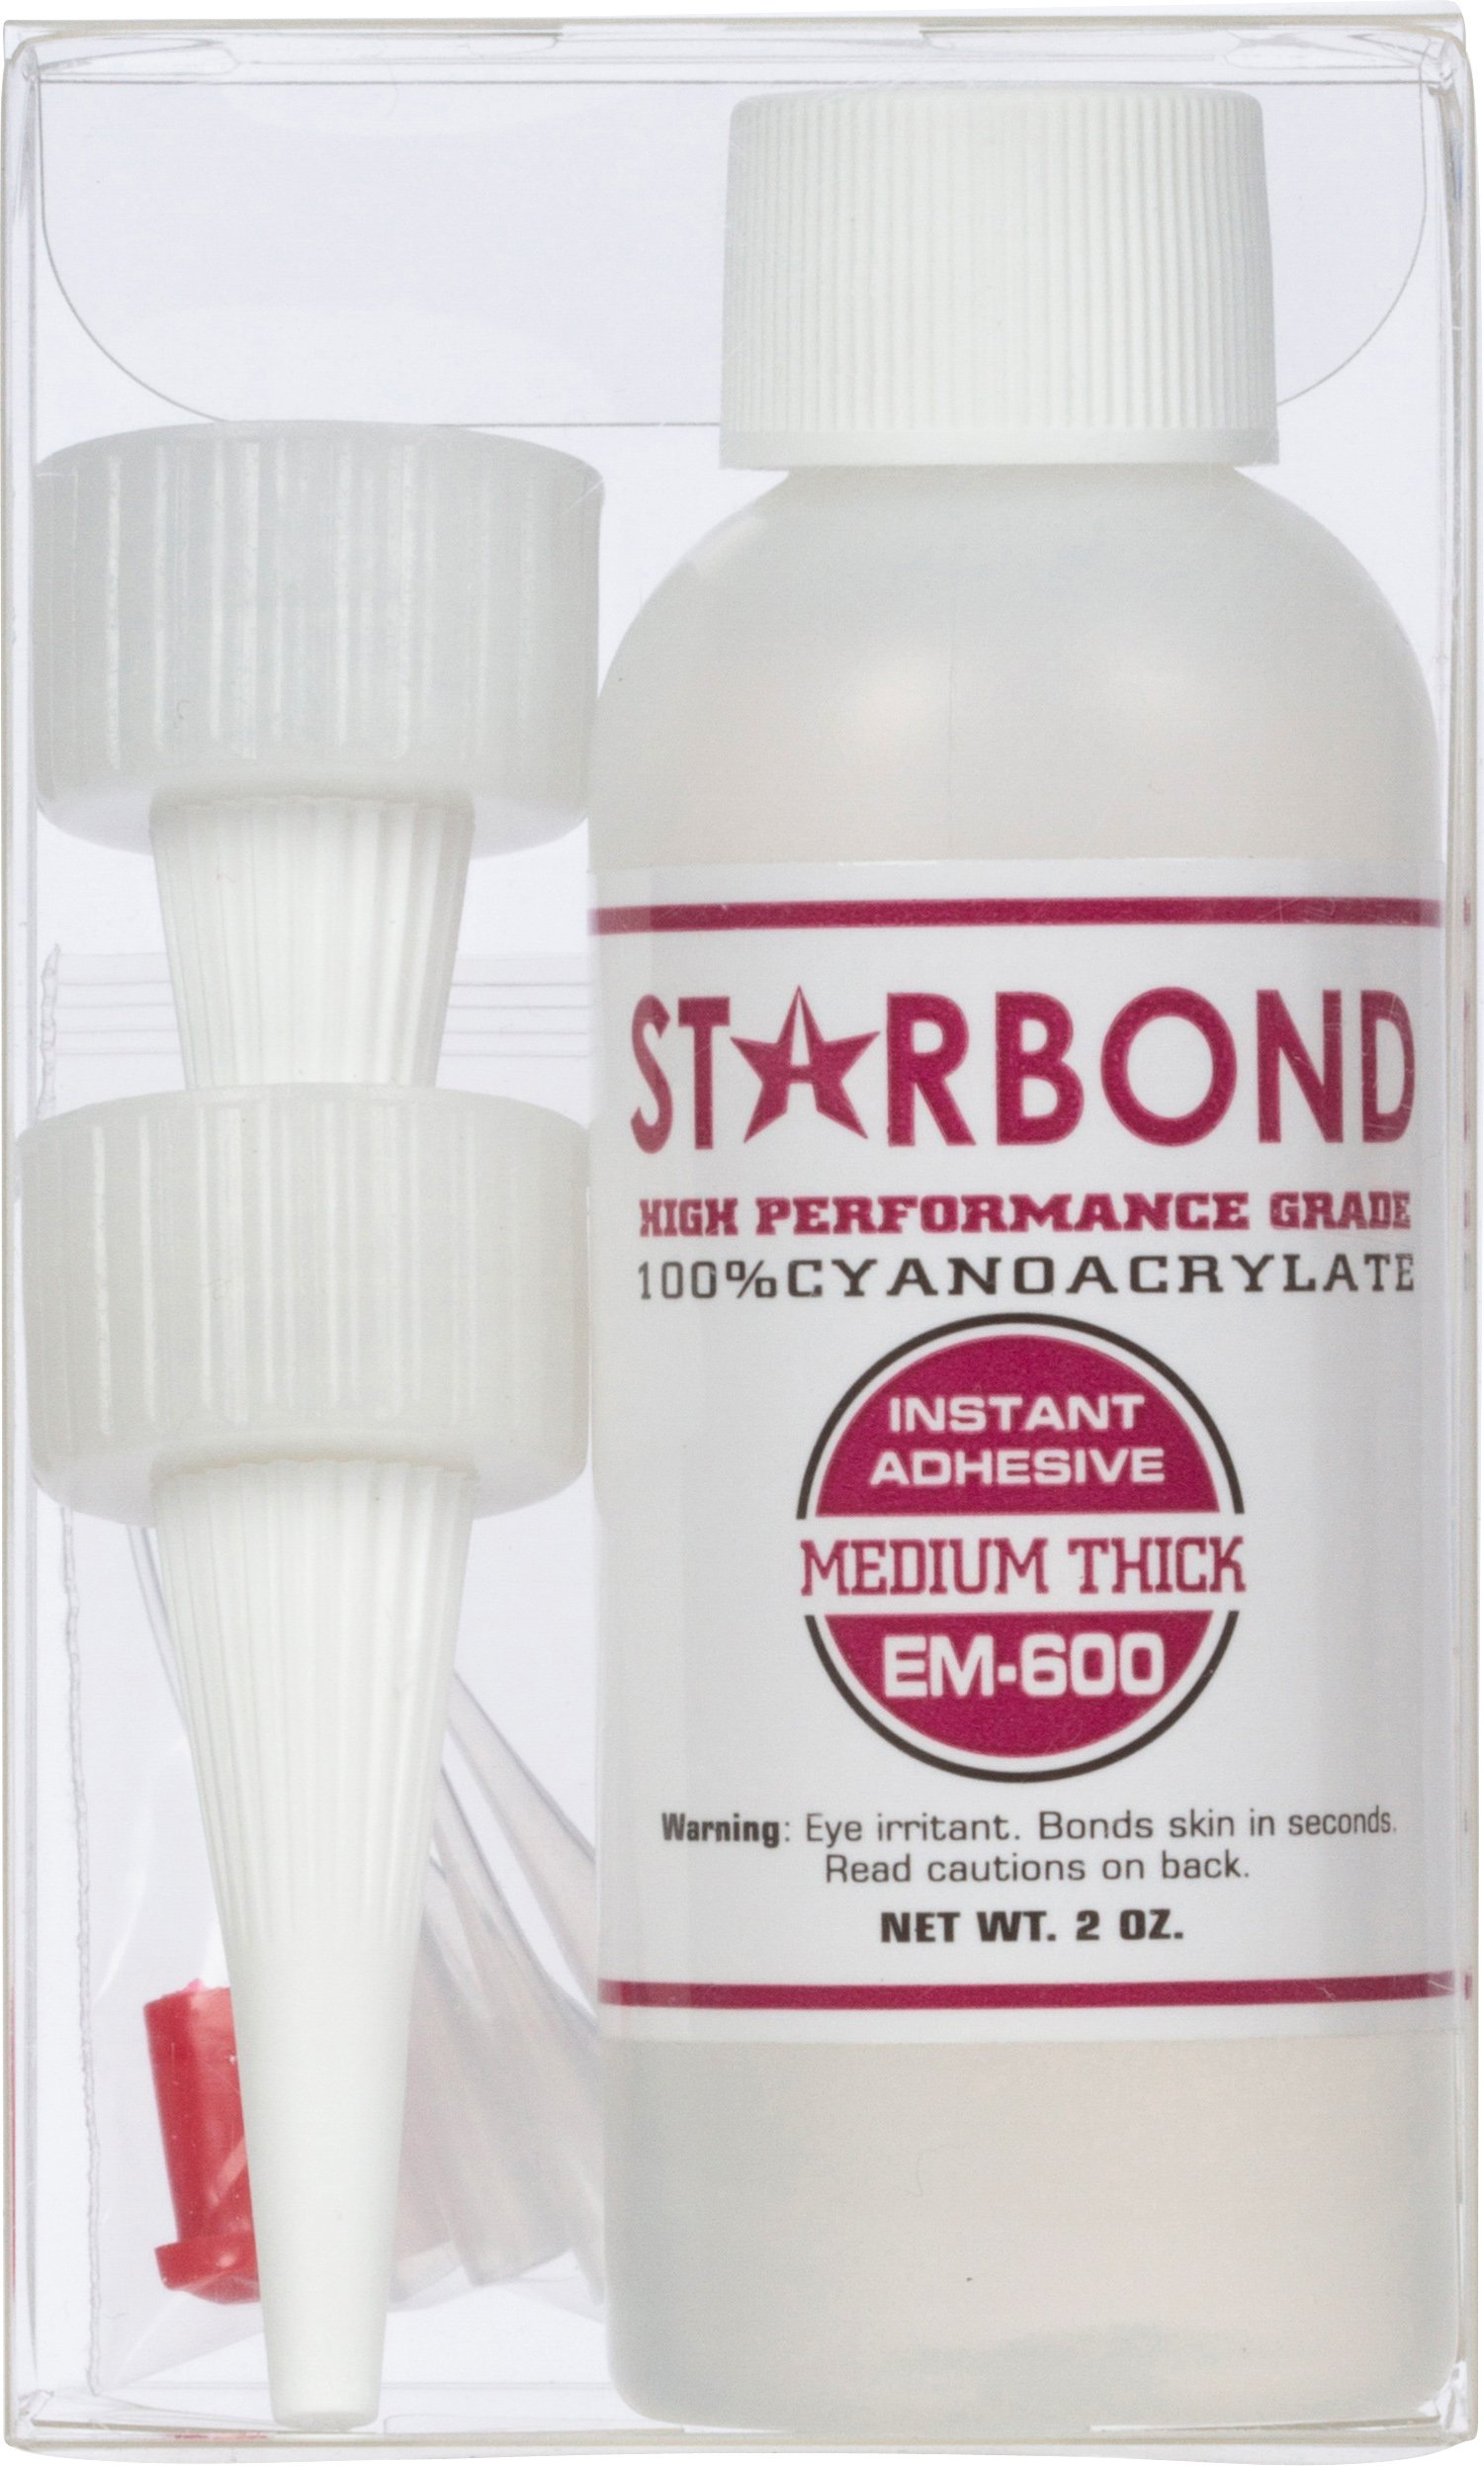 Starbond EM-600 Medium Thick, PREMIUM CA - Cyanoacrylate Adhesive Super Glue (For Woodturning, Hobby, Screen Printing, Lapidary) (2 ounce) by Starbond (Image #2)